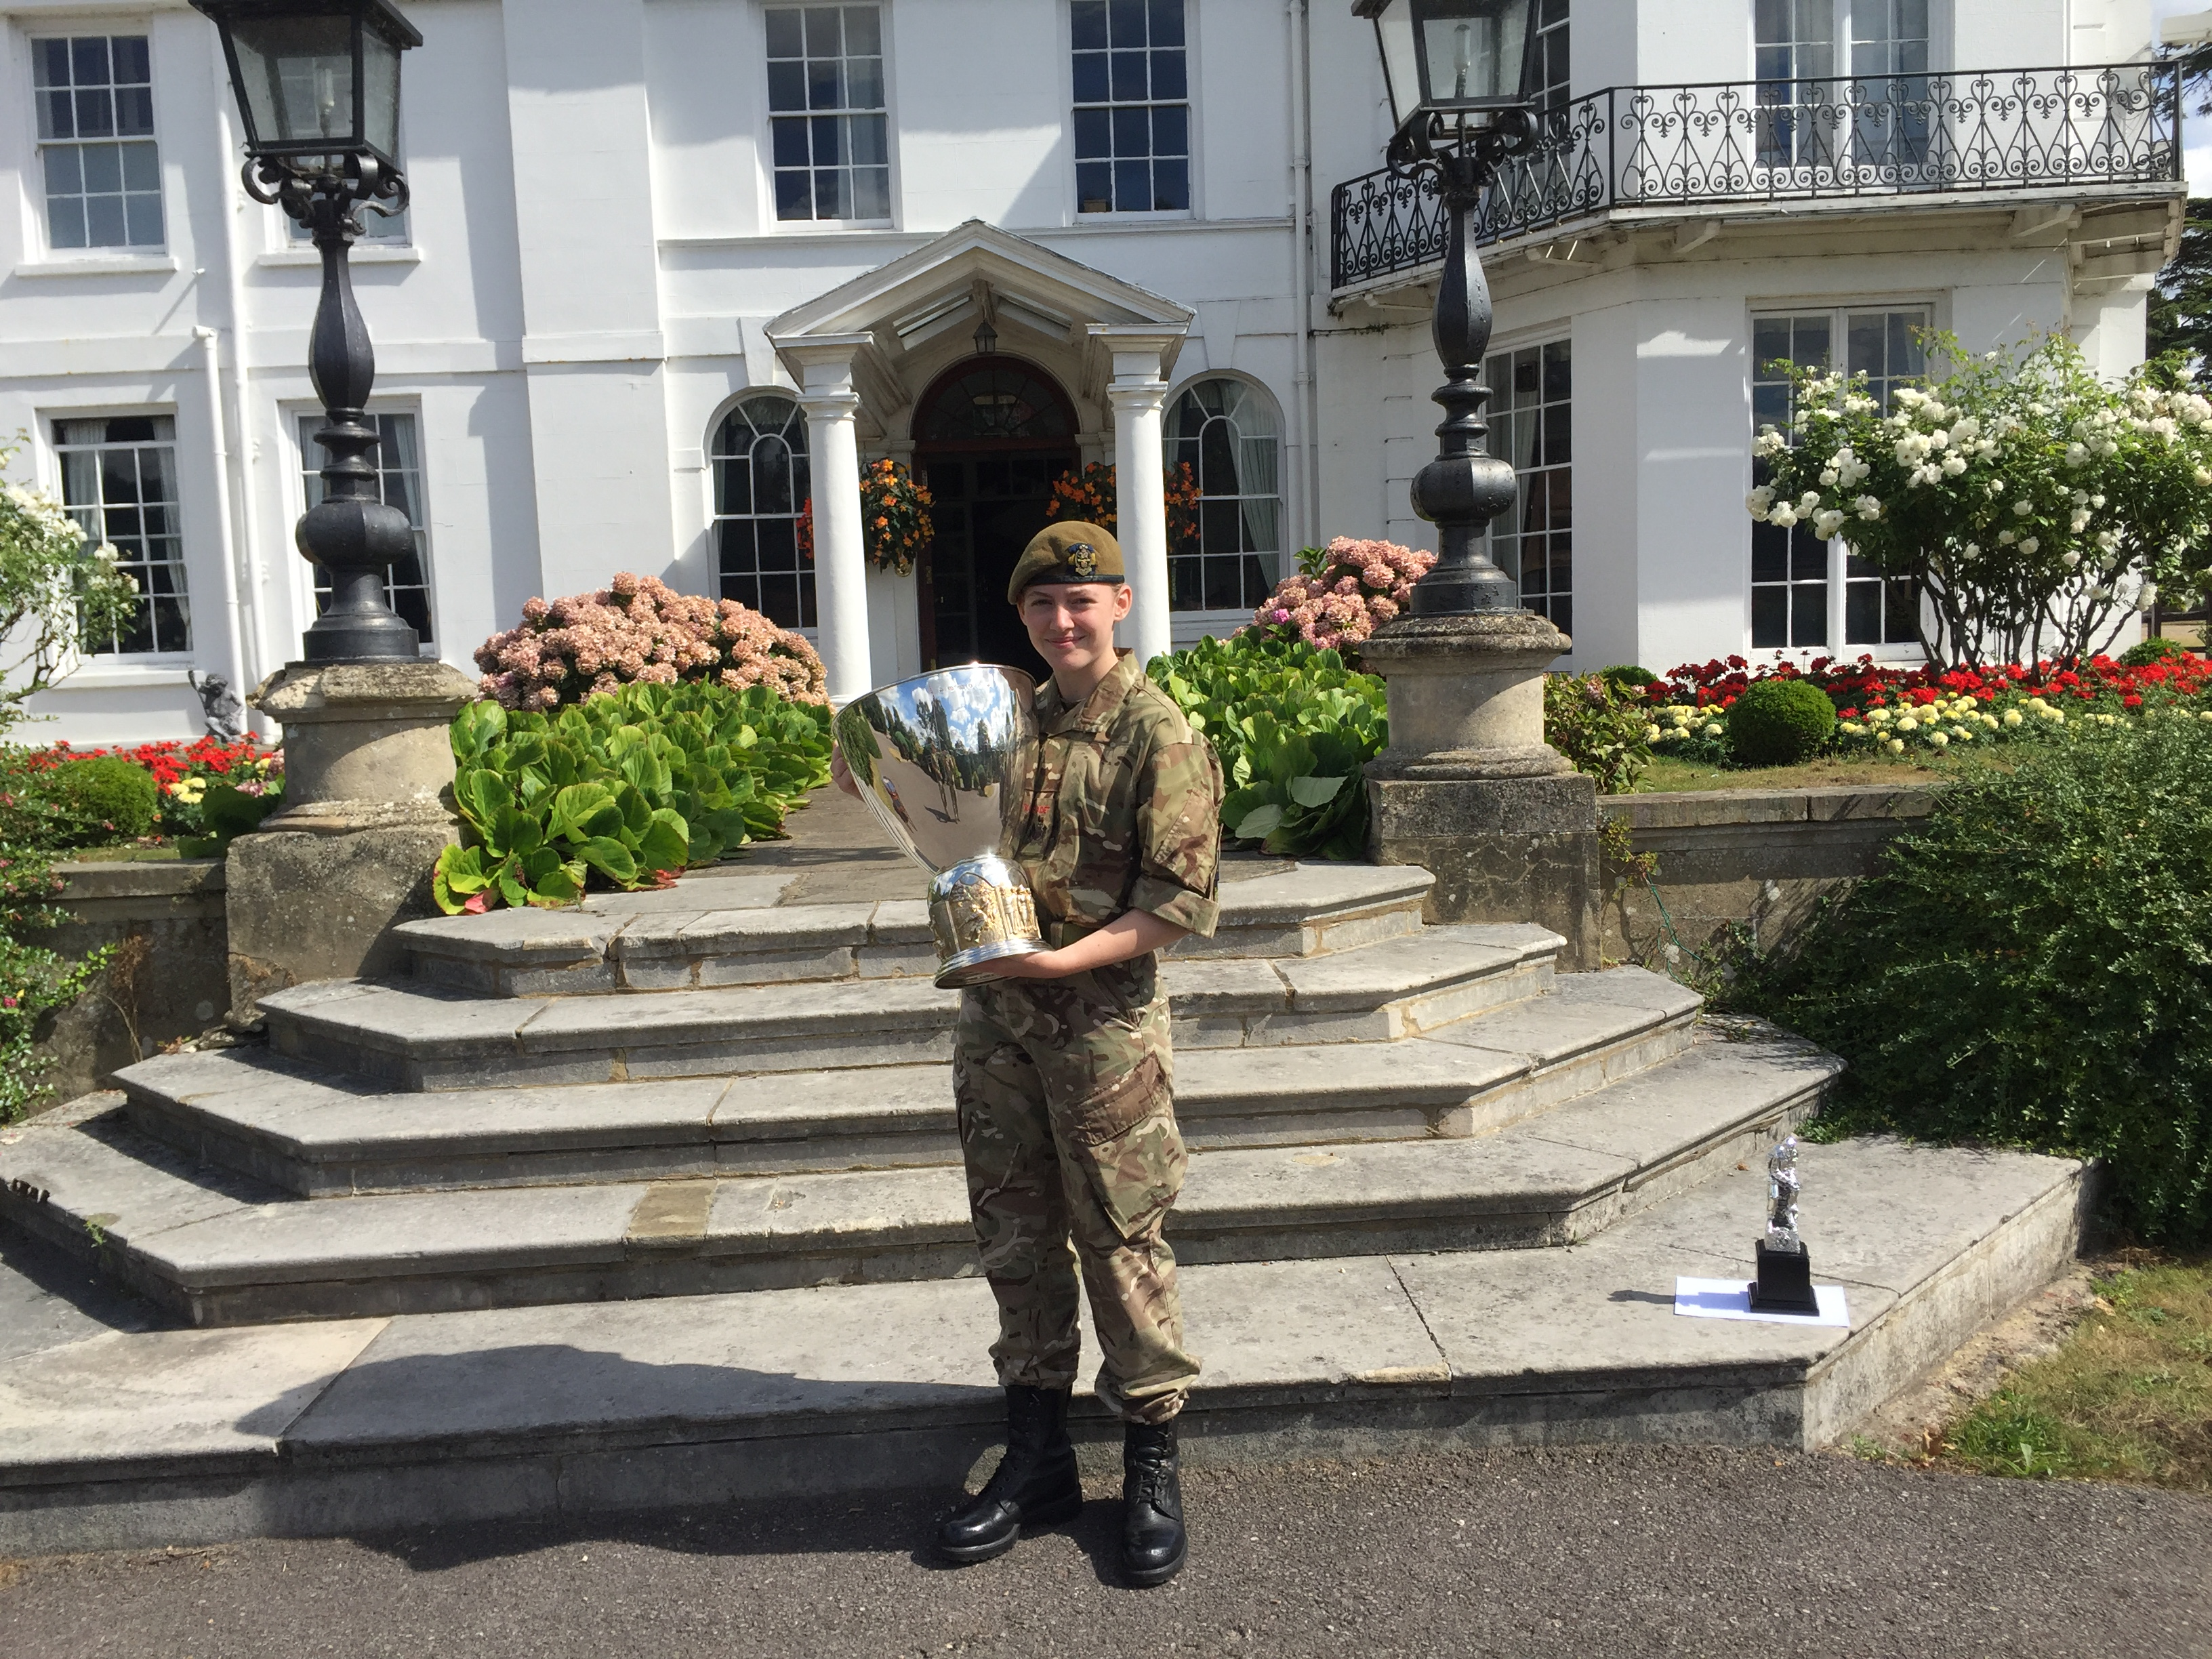 Surrey Army Cadet wins National Competition